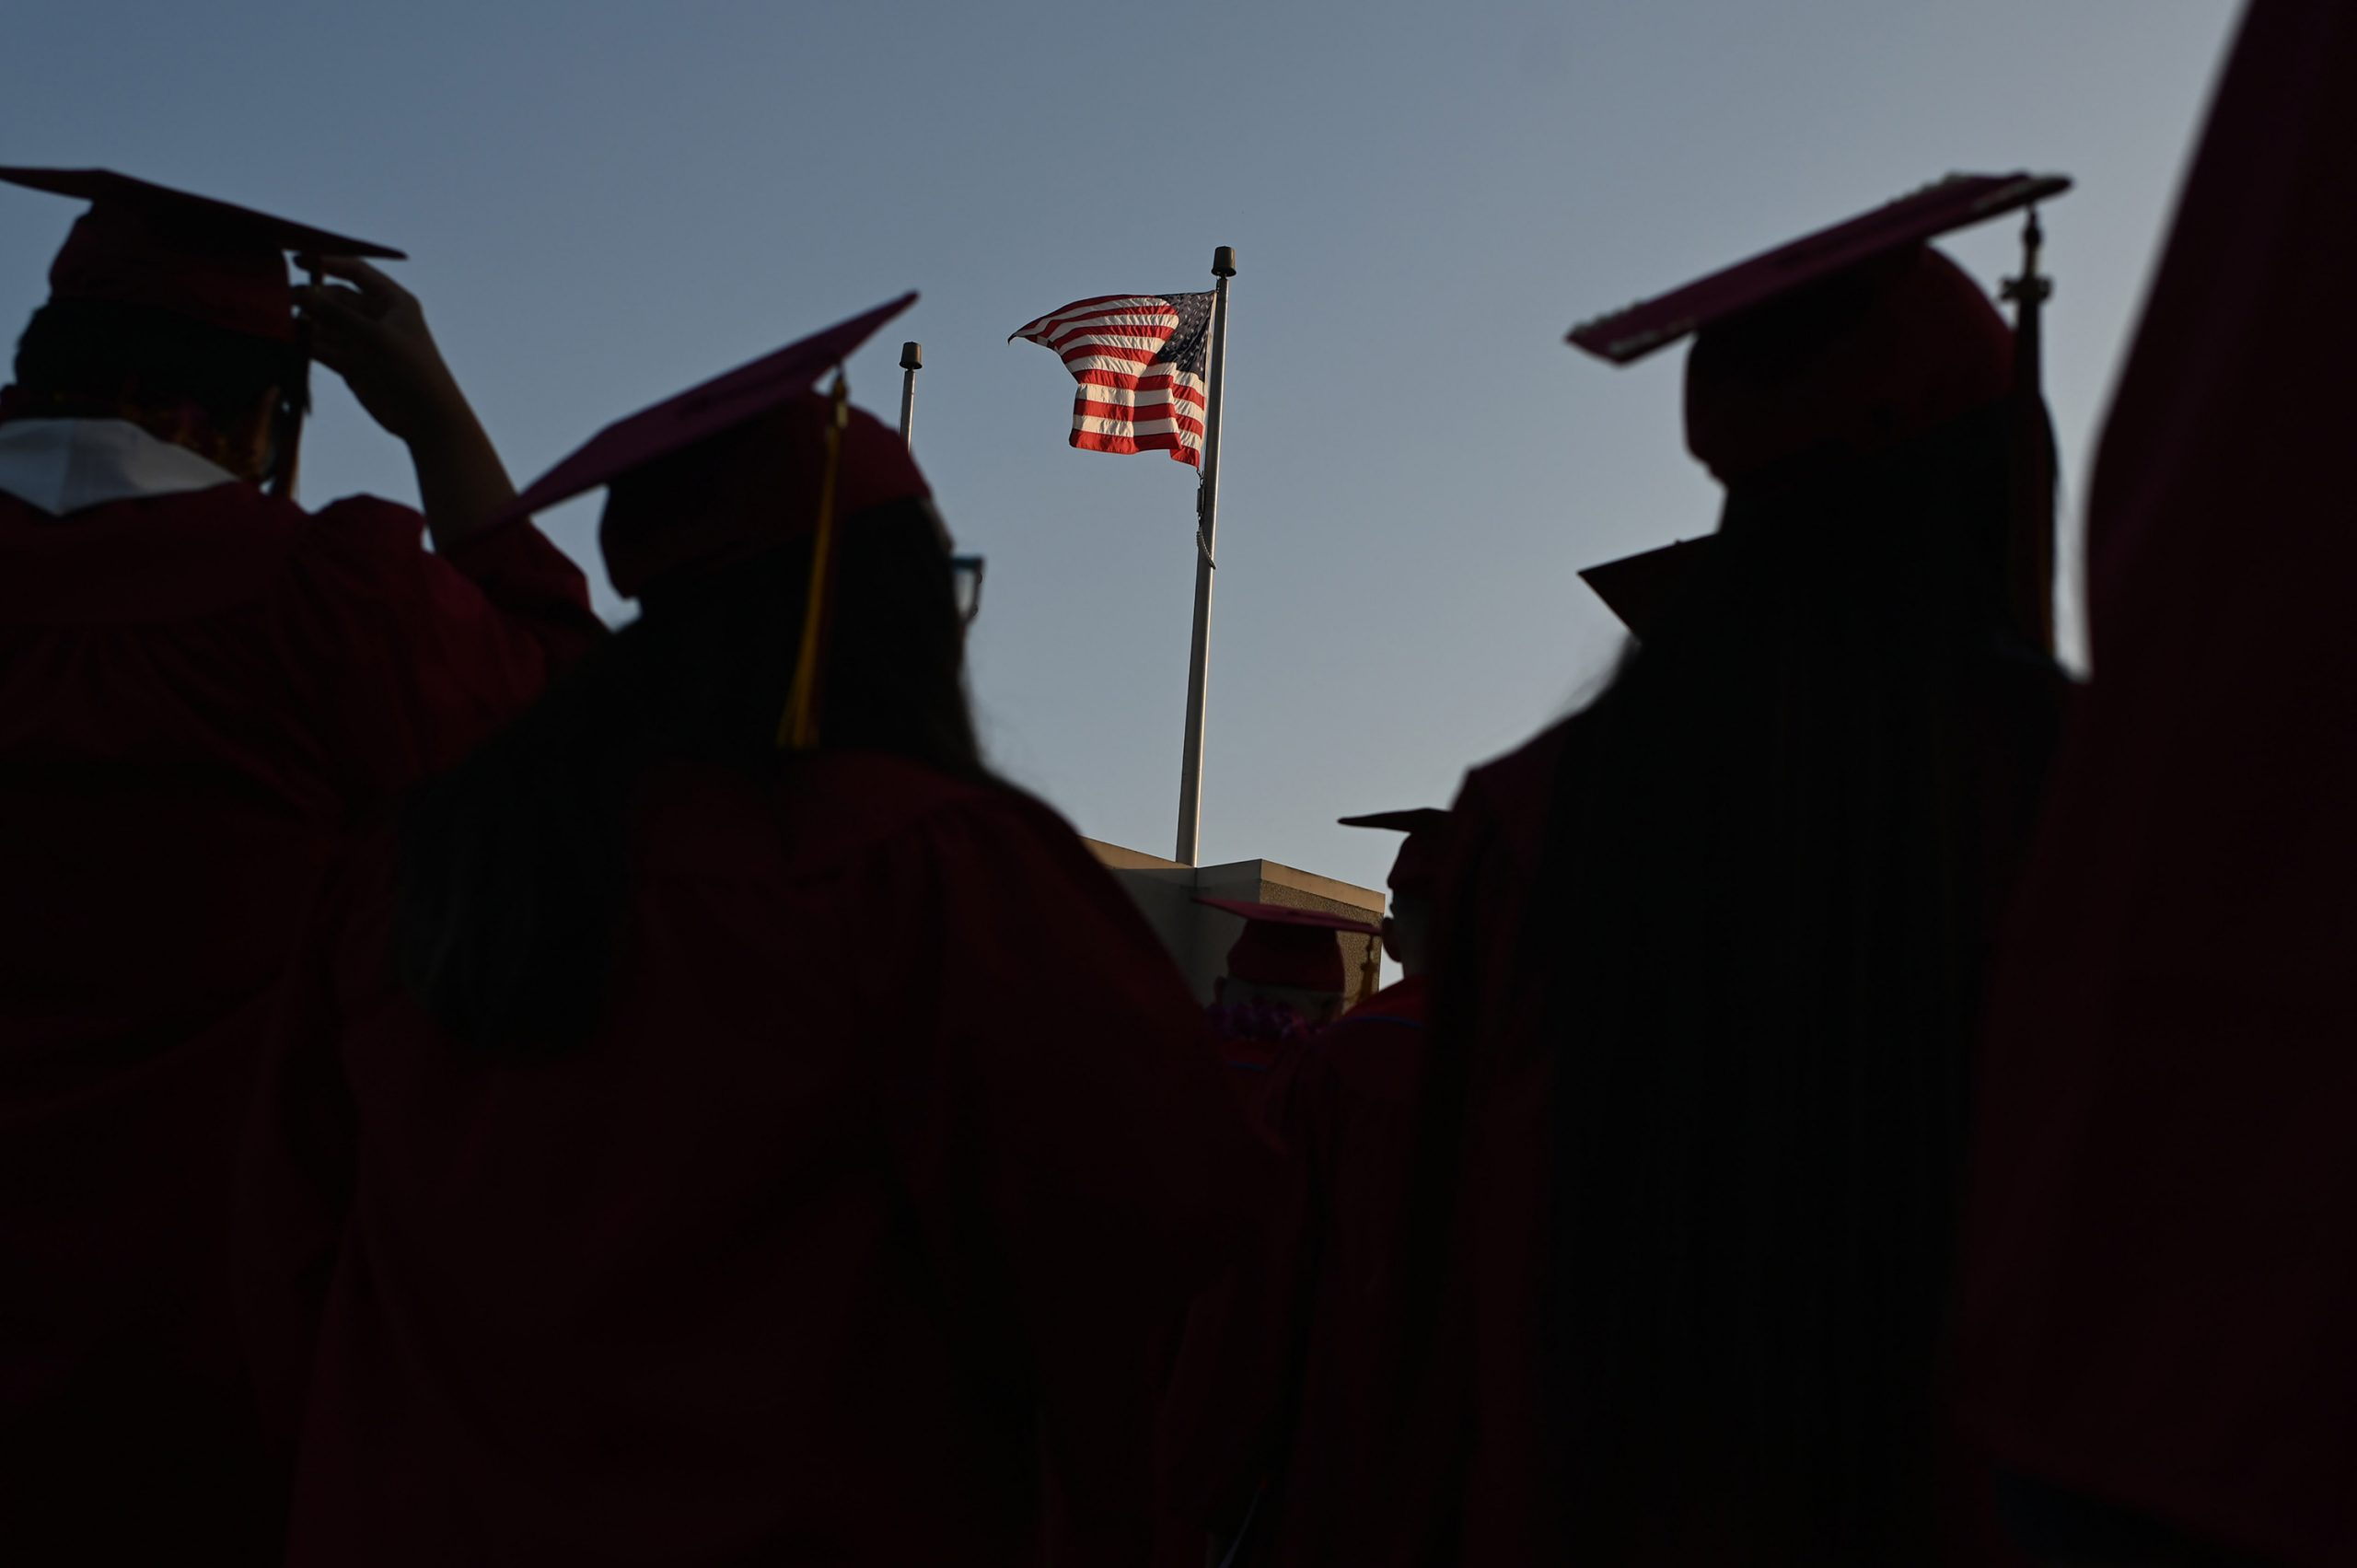 There are nearly 1,300 colleges that owe money to the Department of Education as of February, according to the National Student Legal Defense Network.